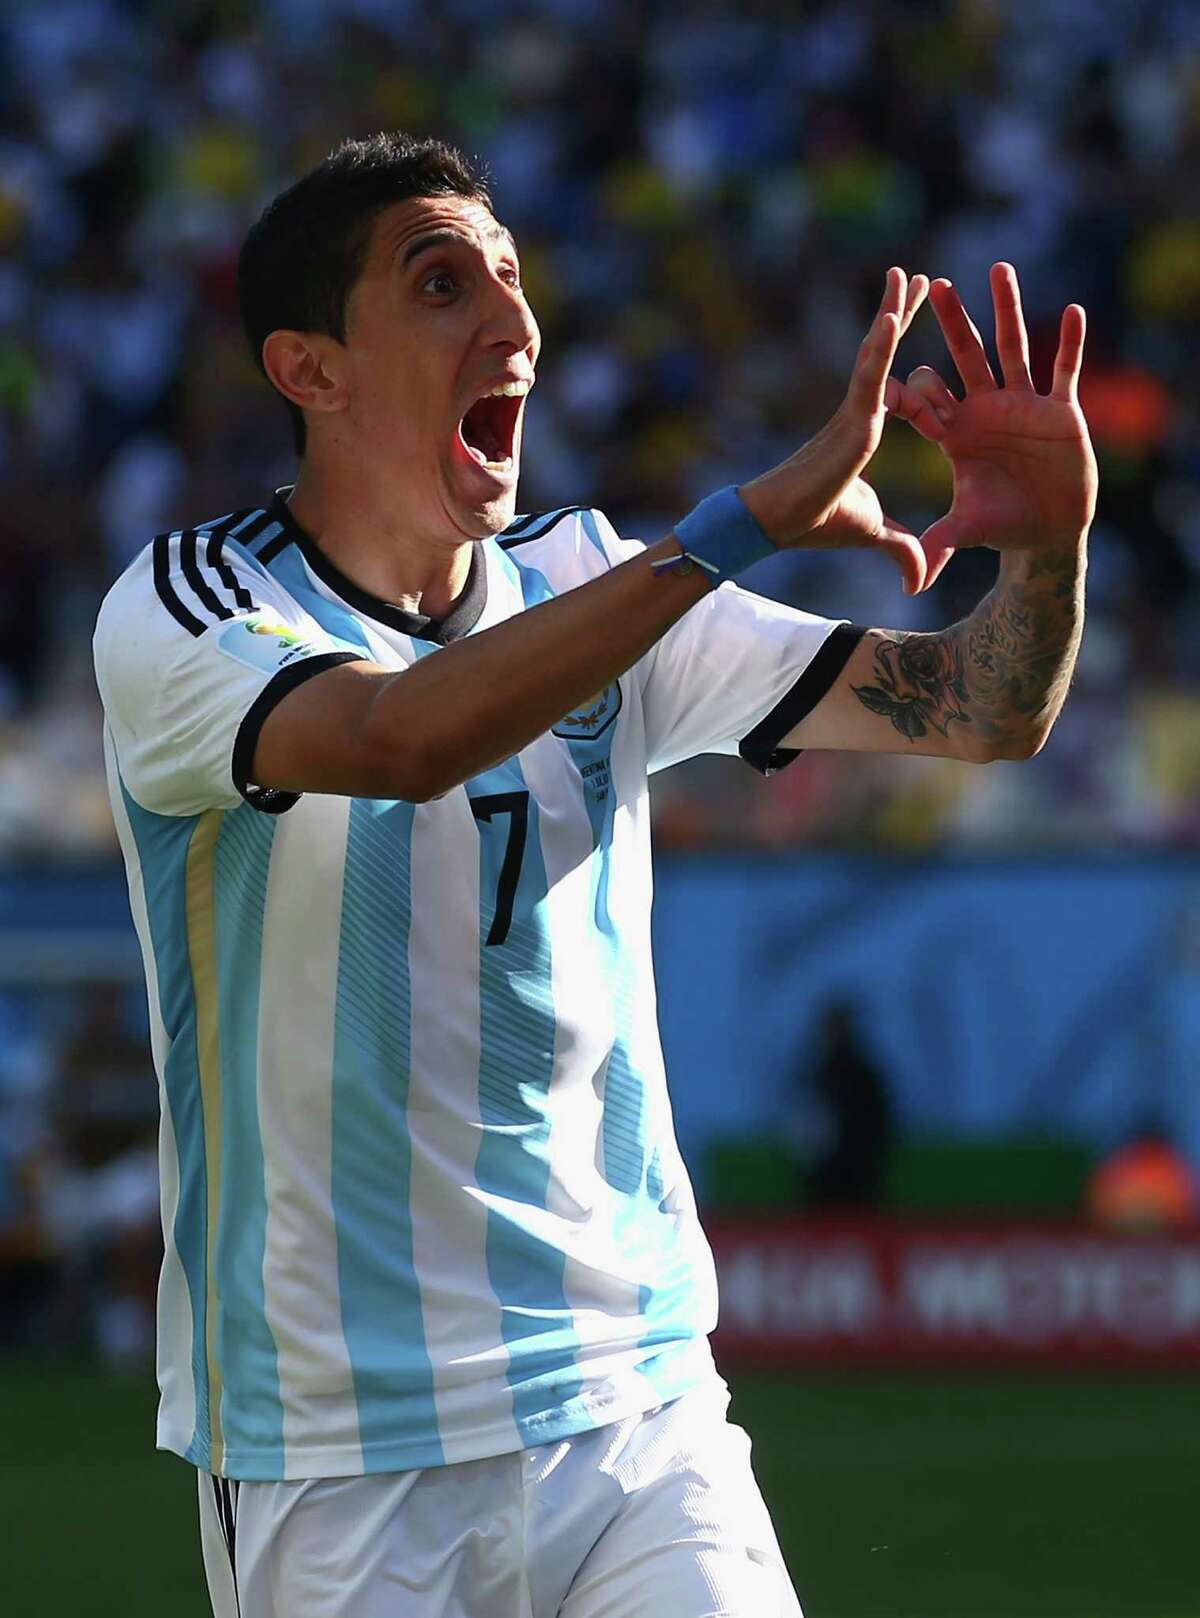 SAO PAULO, BRAZIL - JULY 01: Angel di Maria of Argentina celebrates scoring his team's first goal in extra time during the 2014 FIFA World Cup Brazil Round of 16 match between Argentina and Switzerland at Arena de Sao Paulo on July 1, 2014 in Sao Paulo, Brazil.